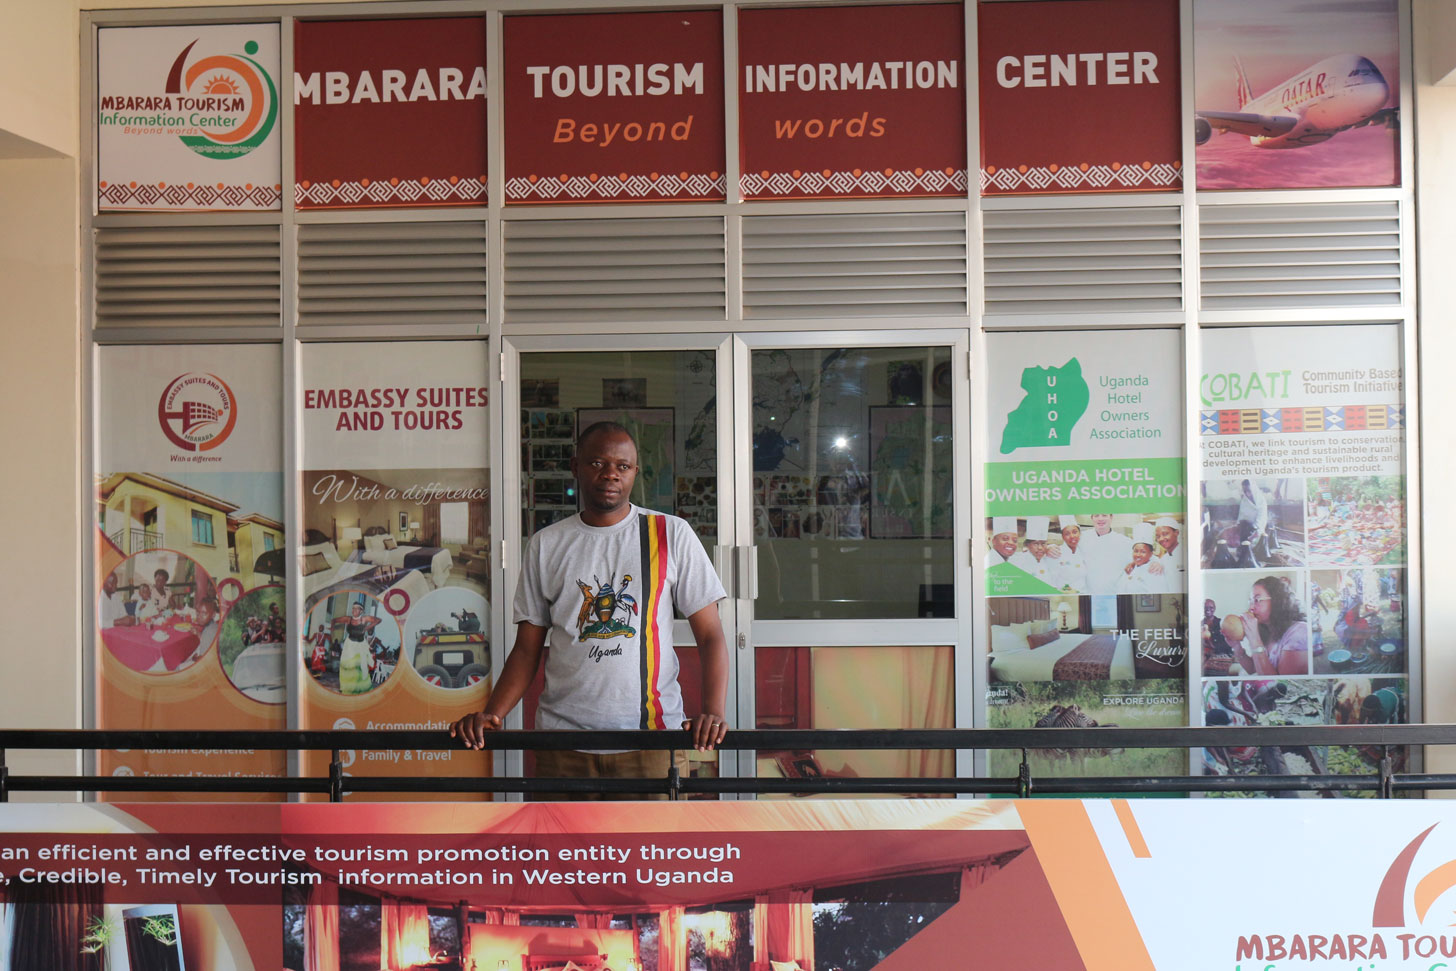 Mbarara Tourism Information Center